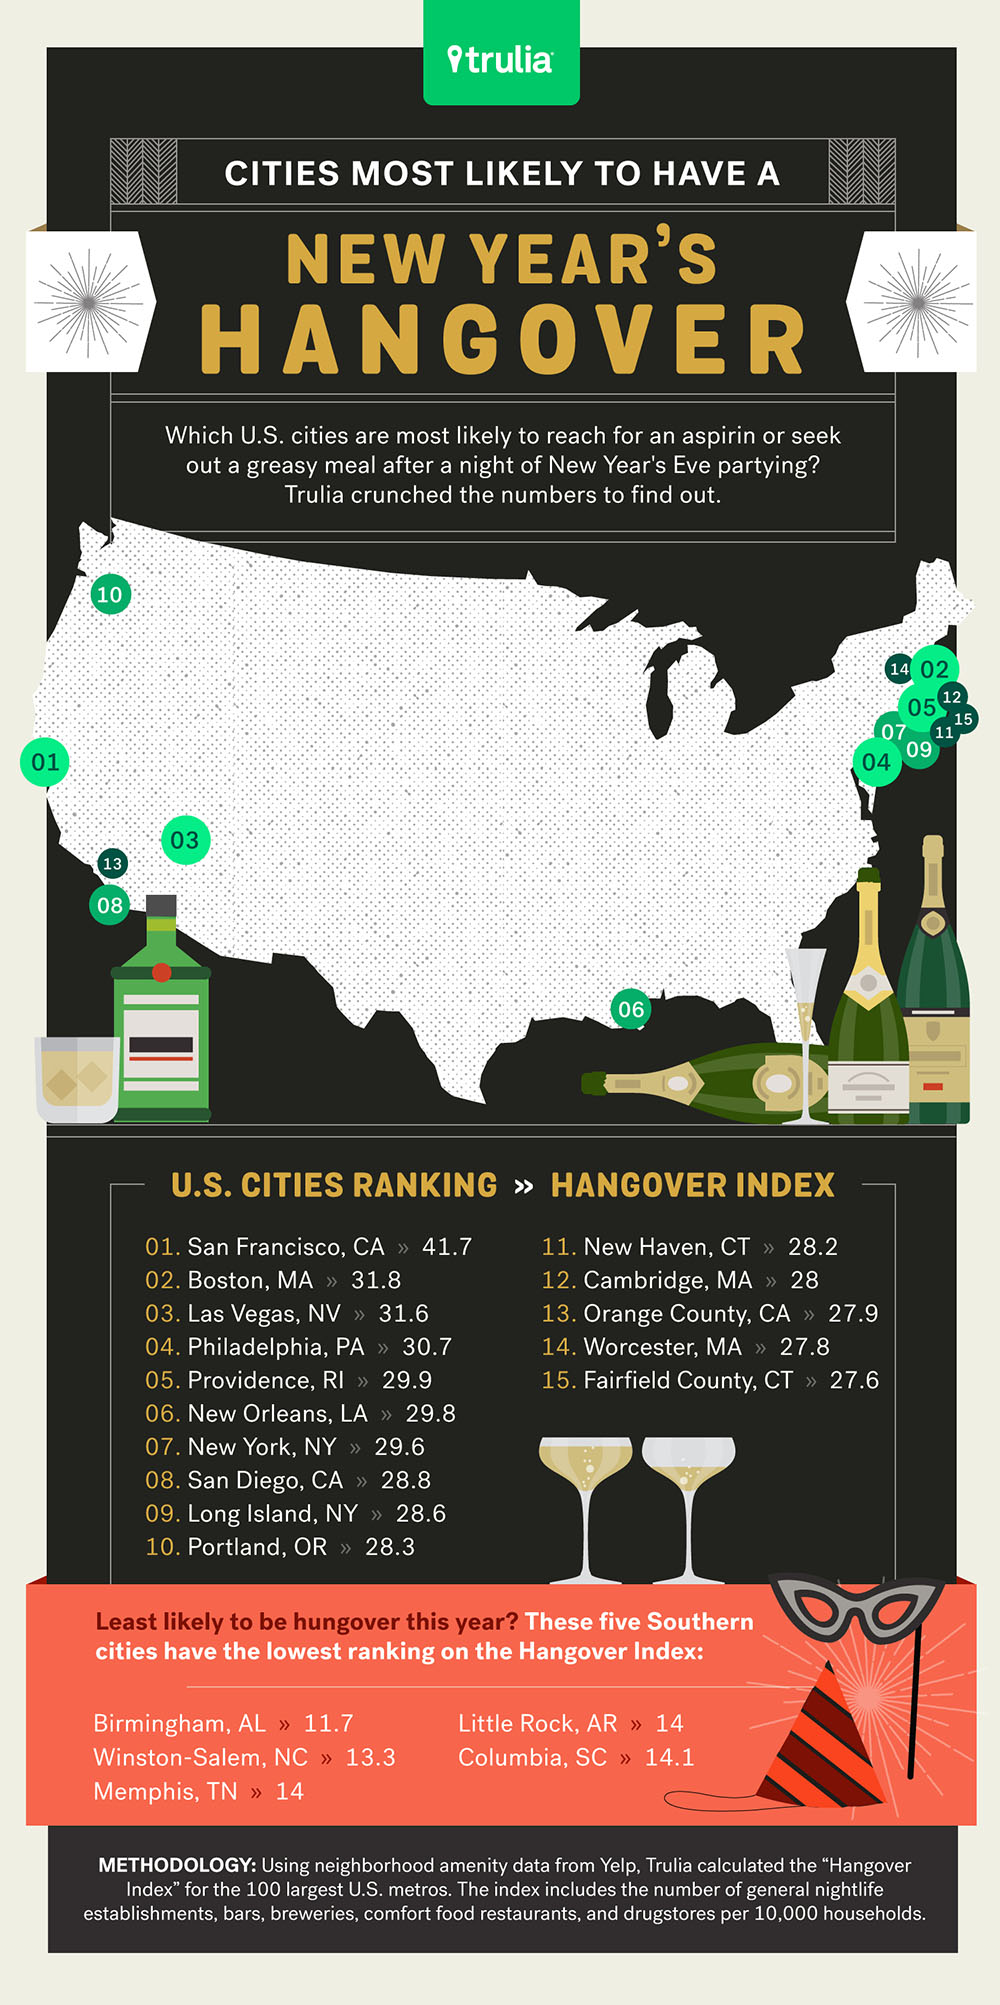 Cities-Most-Likely-To-Have-A-New-Years-Day-Hangover-12-14-PART-1